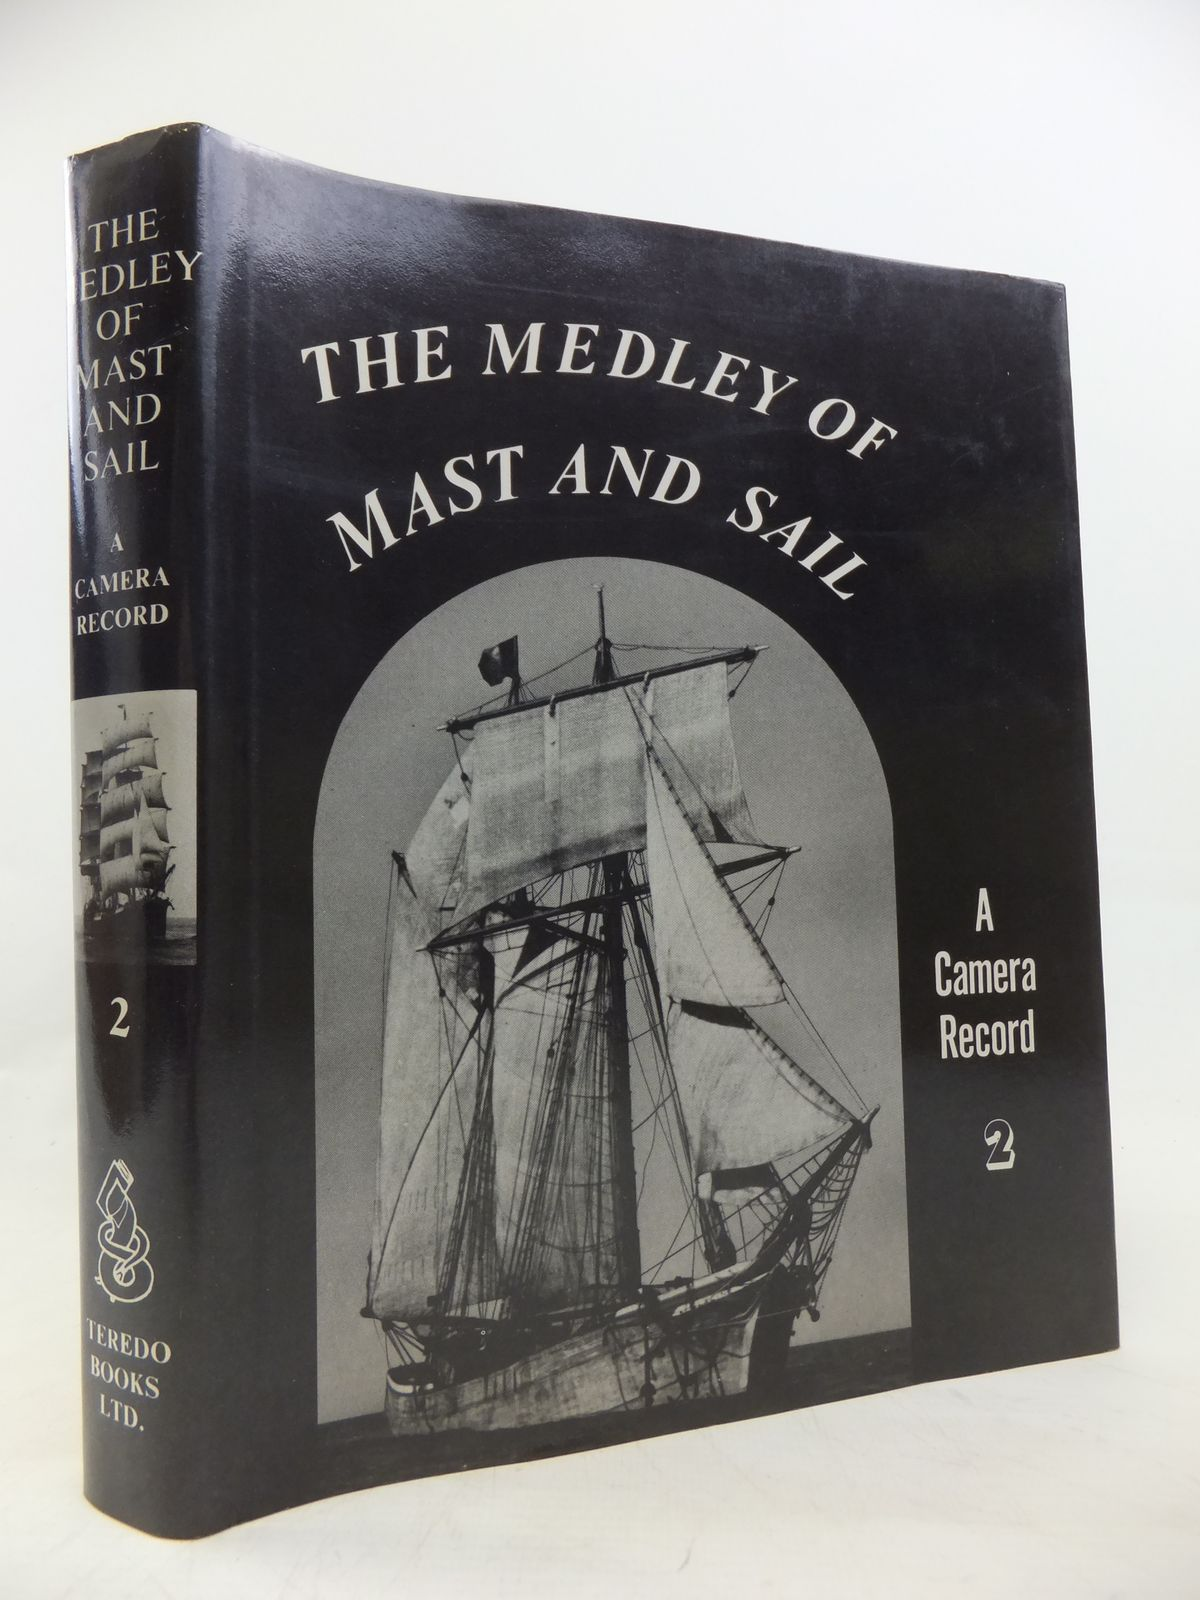 Photo of THE MEDLEY OF MAST AND SAIL A CAMERA RECORD 2 written by Hurst, Alex A. published by Teredo Books (STOCK CODE: 2115578)  for sale by Stella & Rose's Books